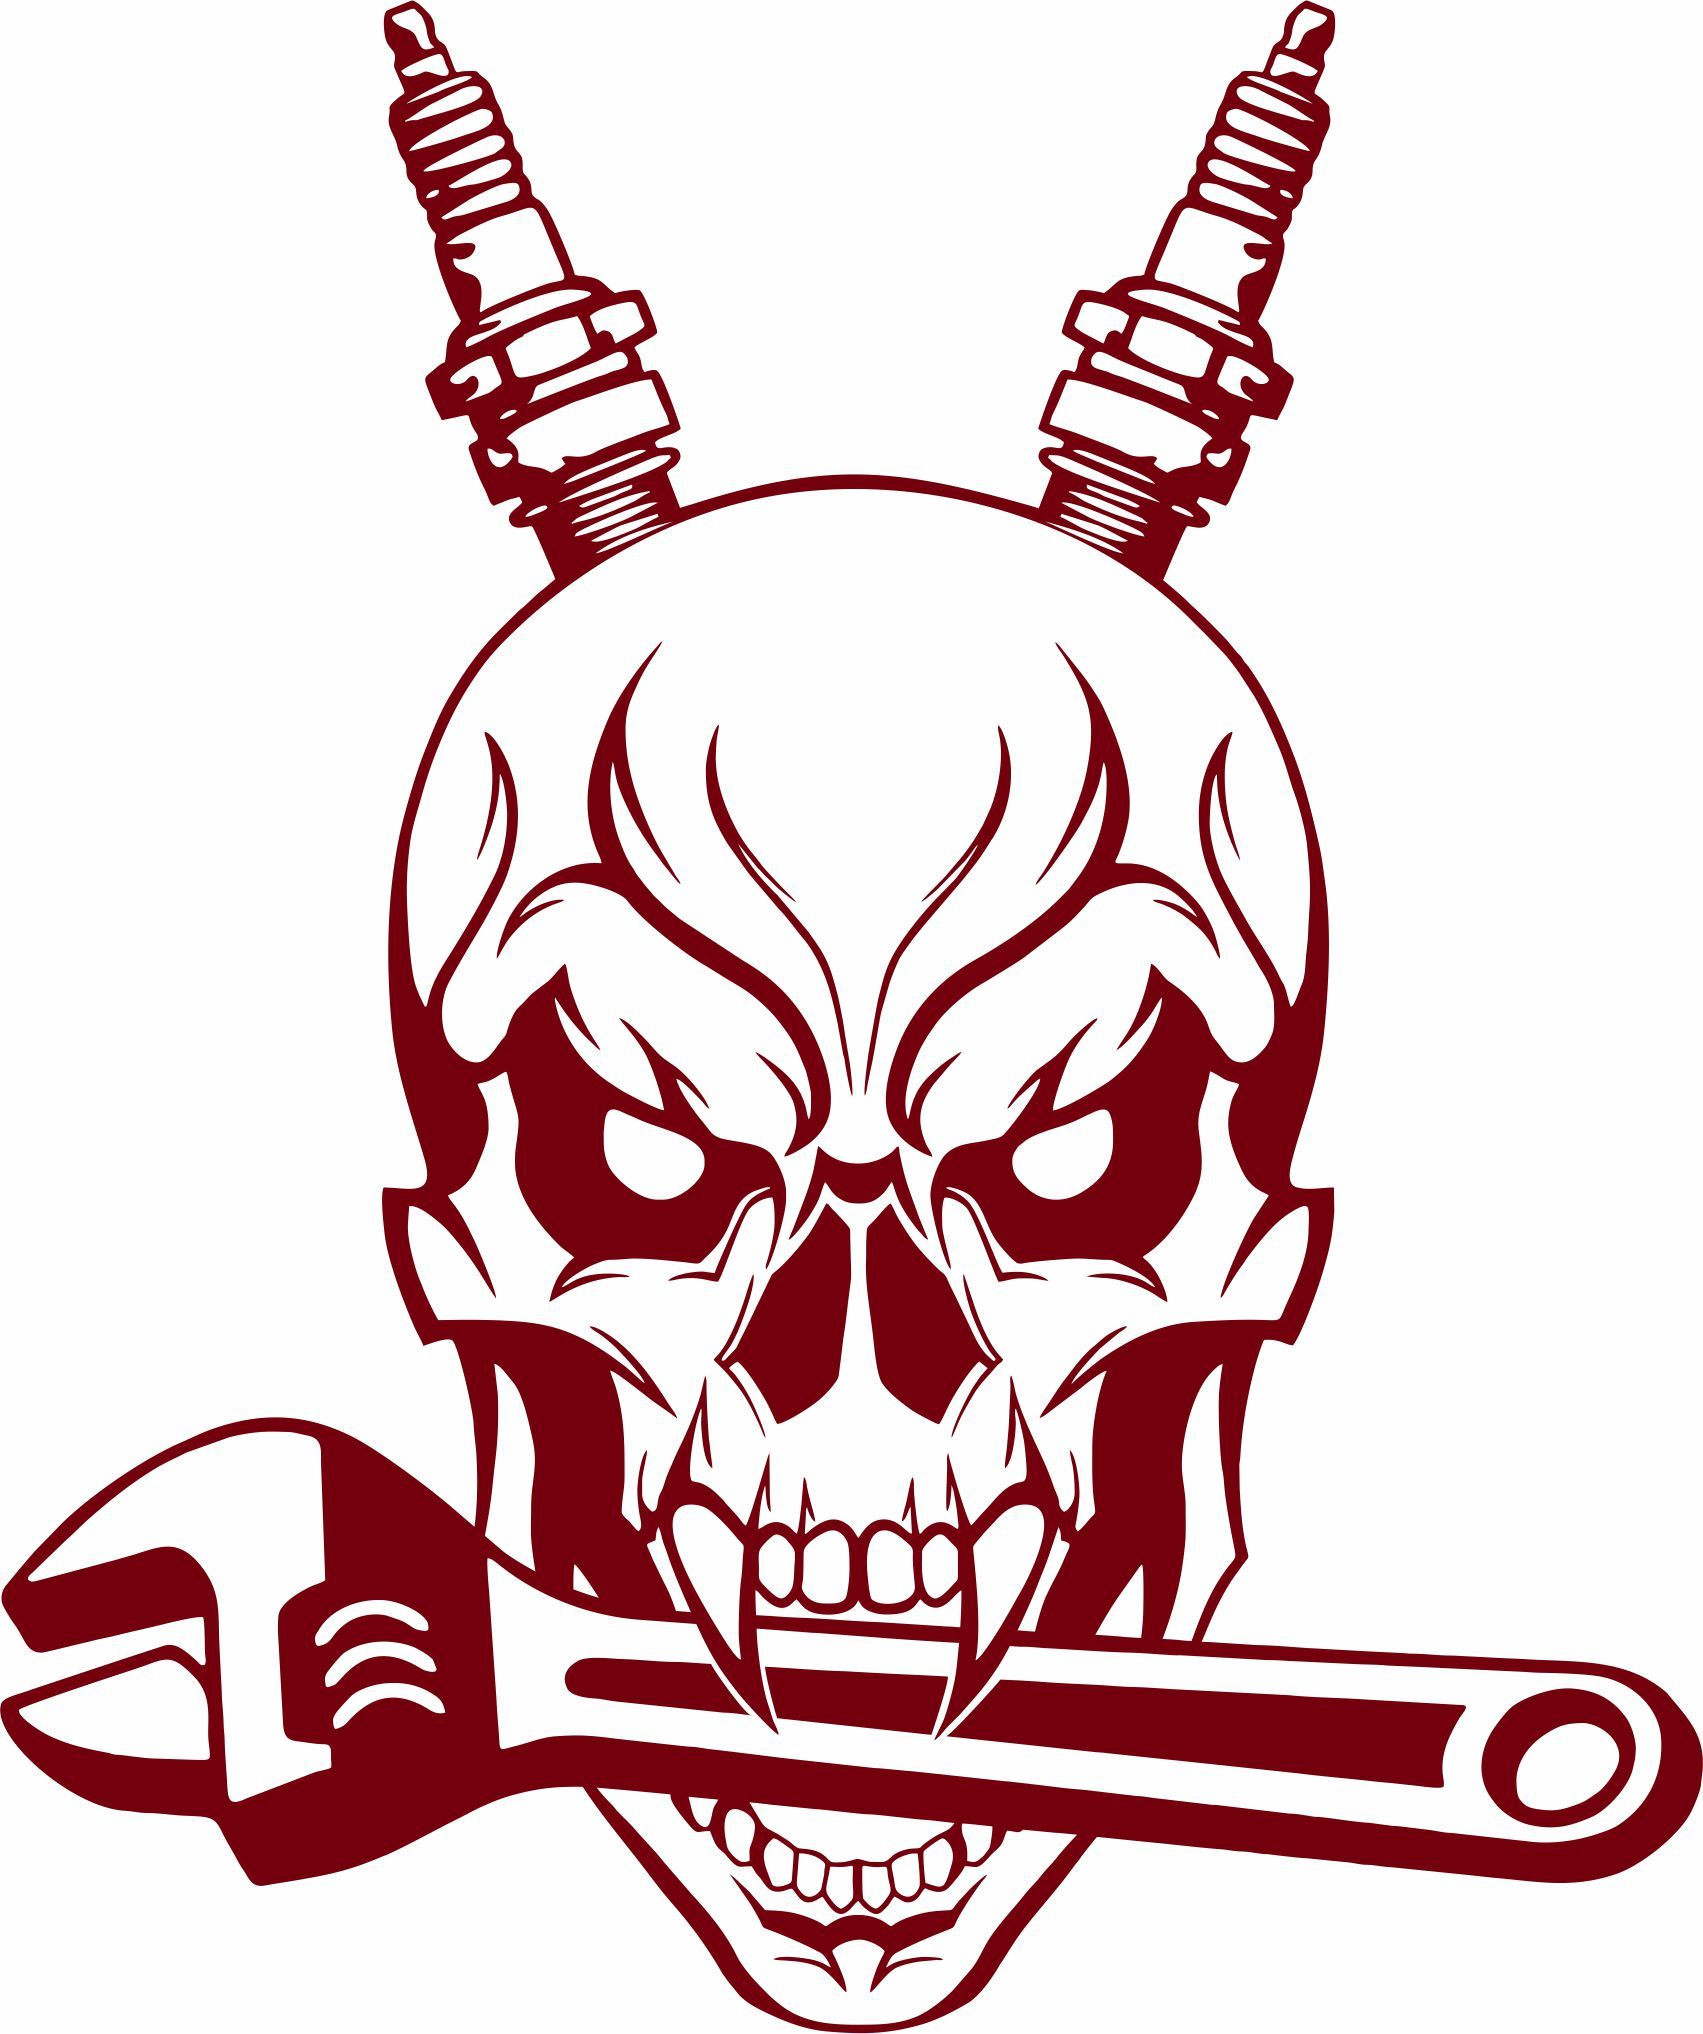 Auto mechanic skull spark plug wrench tools garage shop vinyl decal sticker